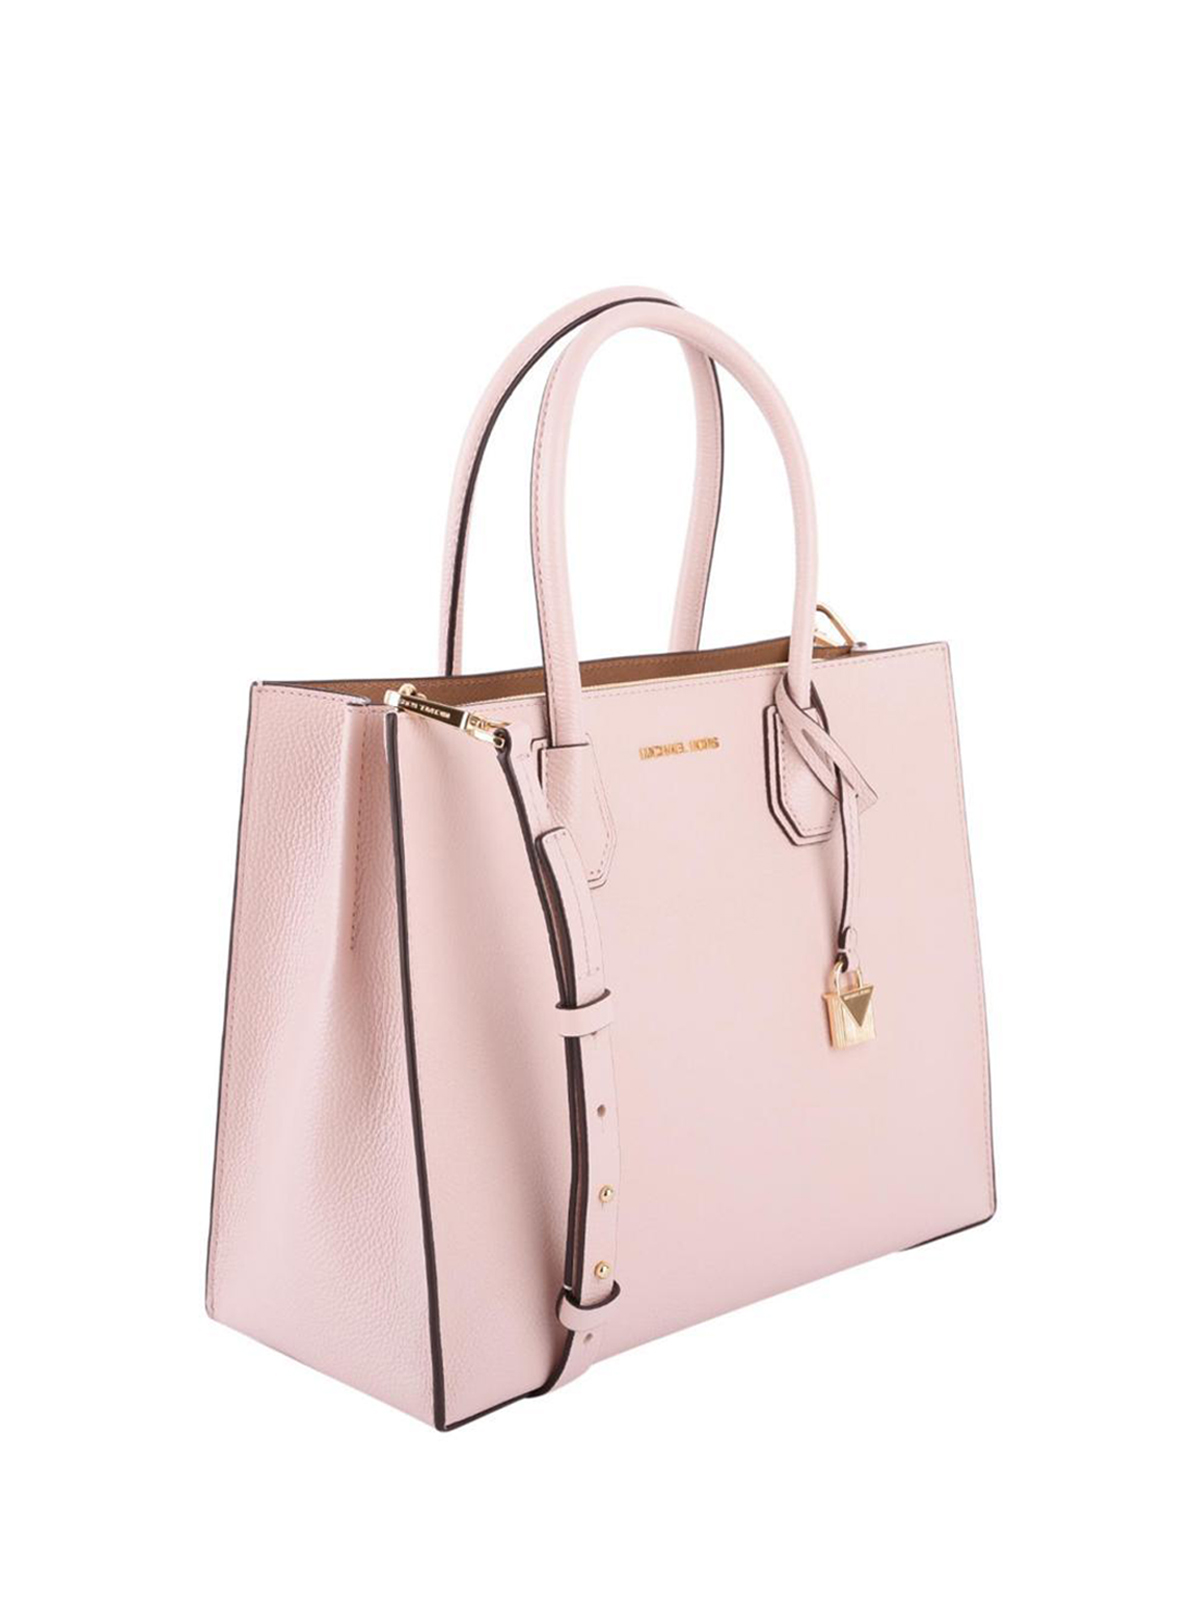 62fd2c8d0c4221 Michael Kors Purse Mercer Light Pink | Stanford Center for ...